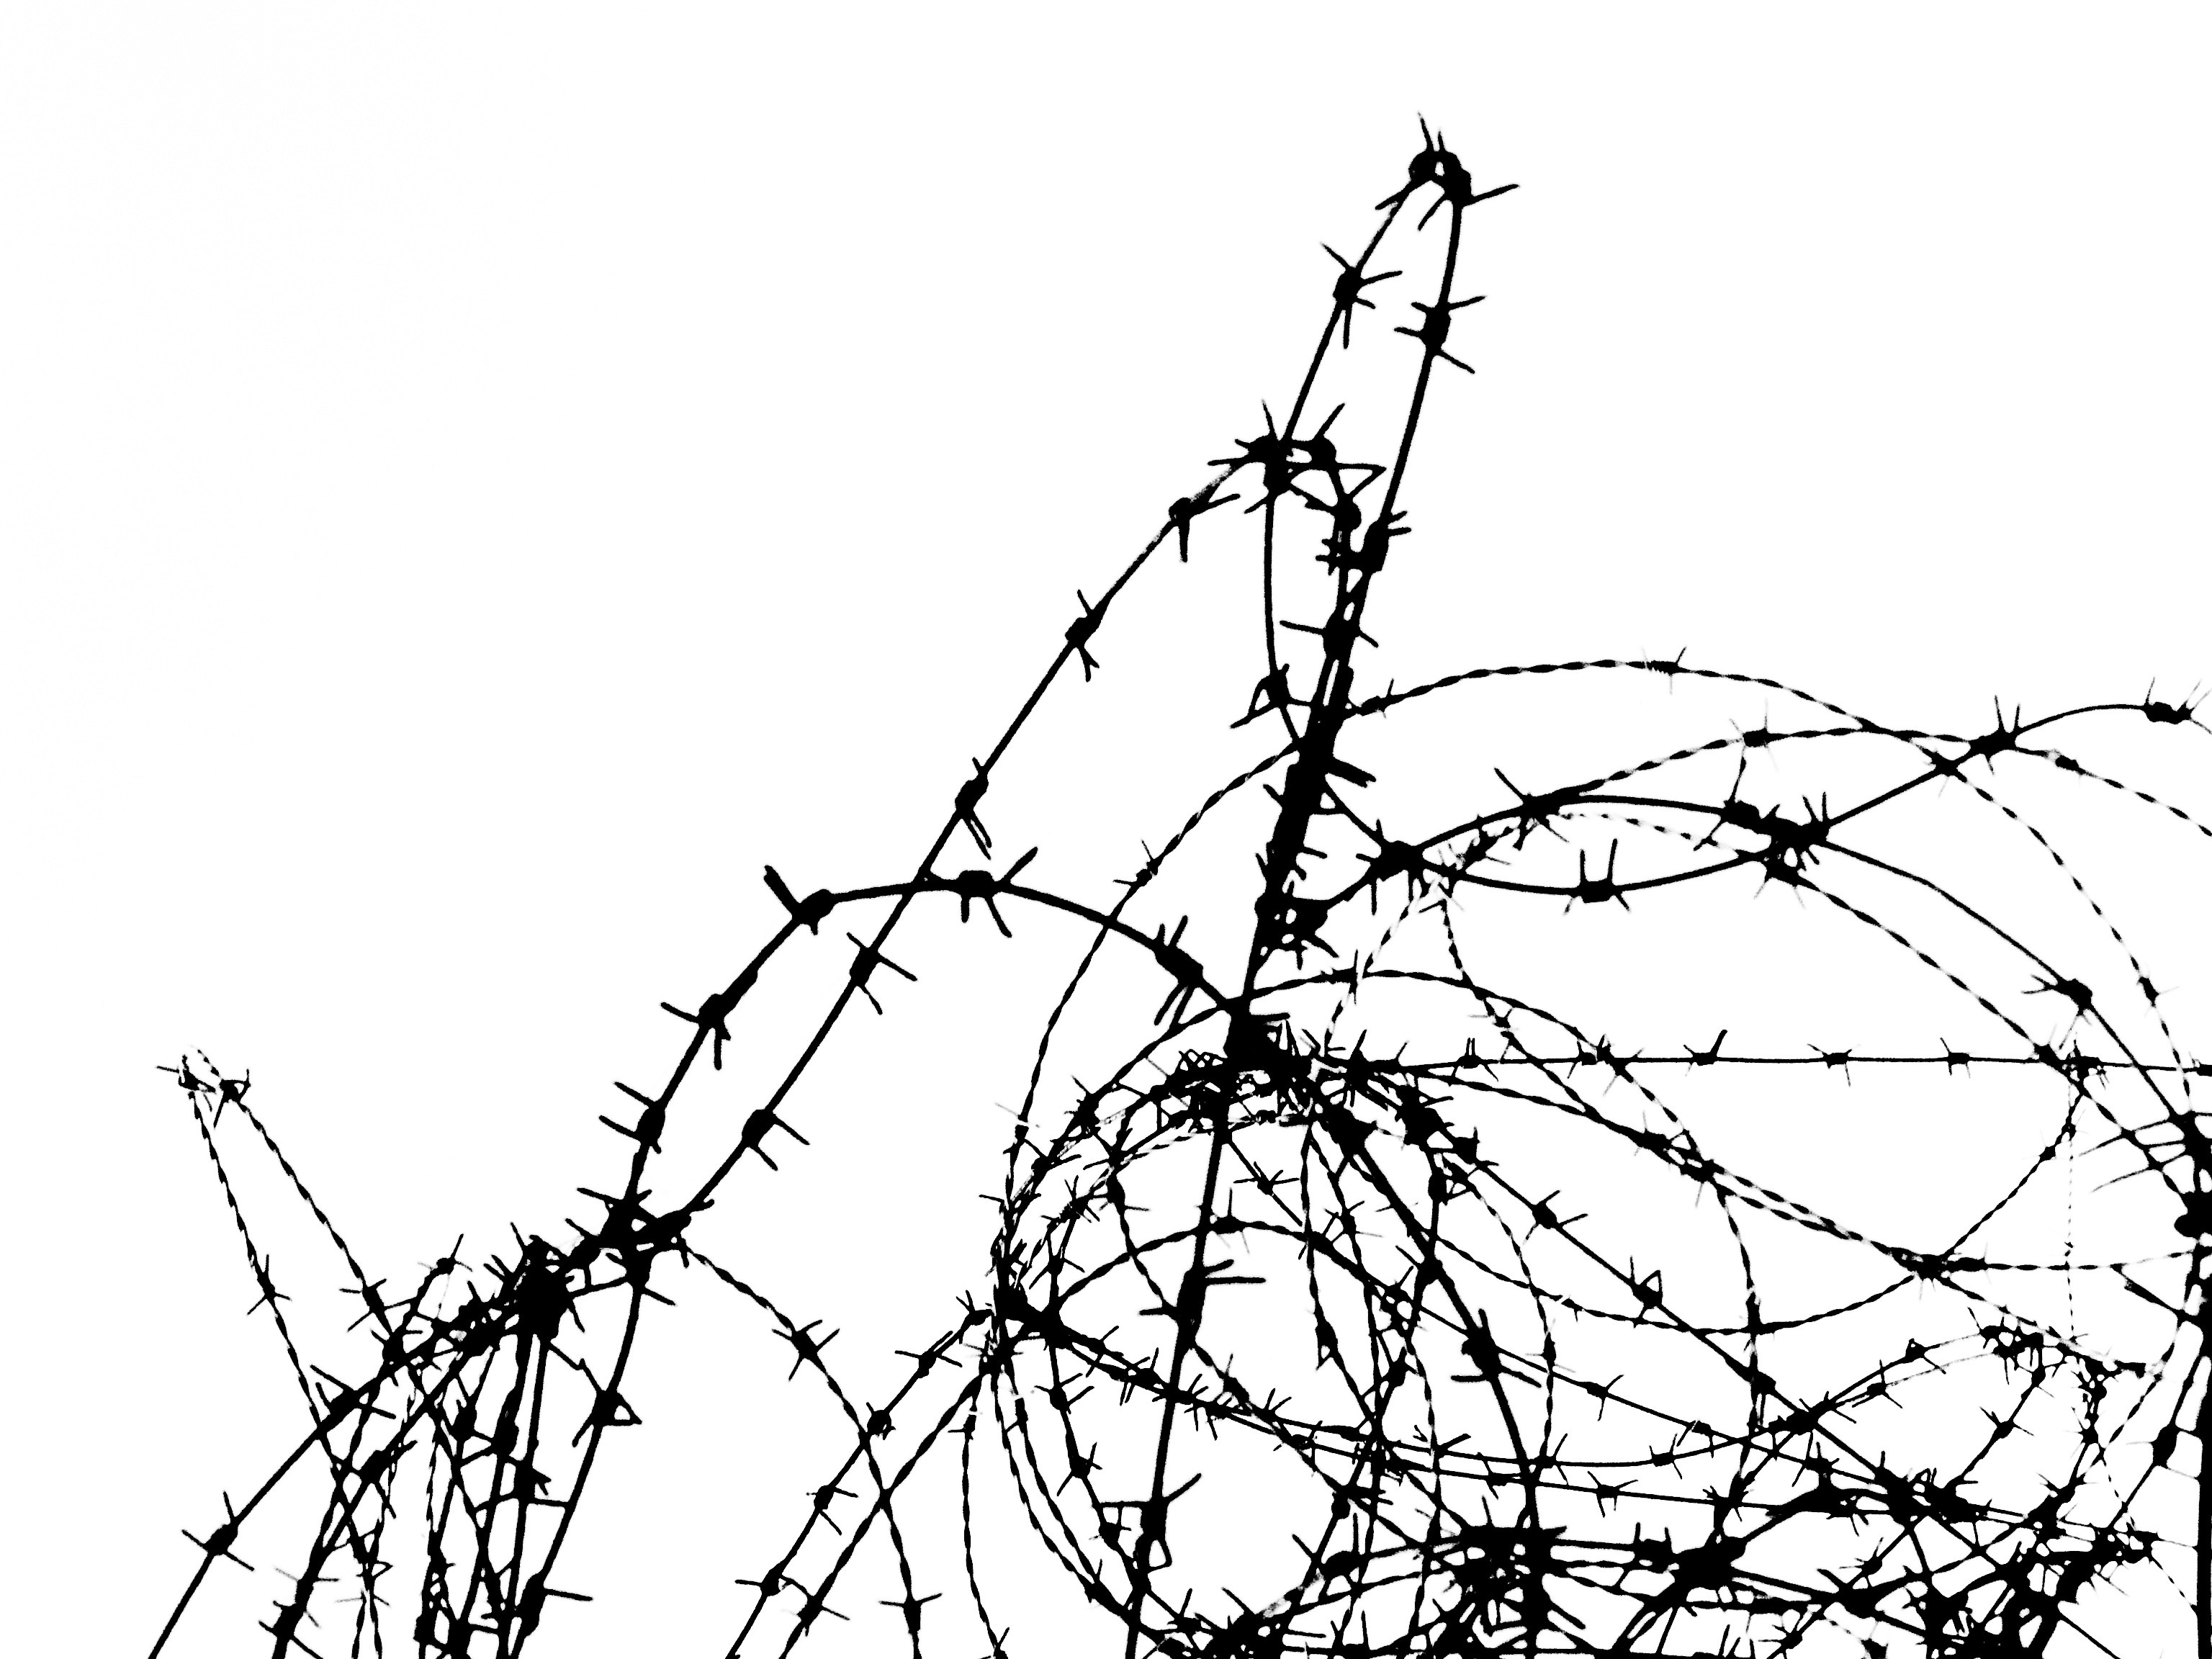 3072x2304 Free Images Branch, Black And White, Wire, Monochrome, Barbwire